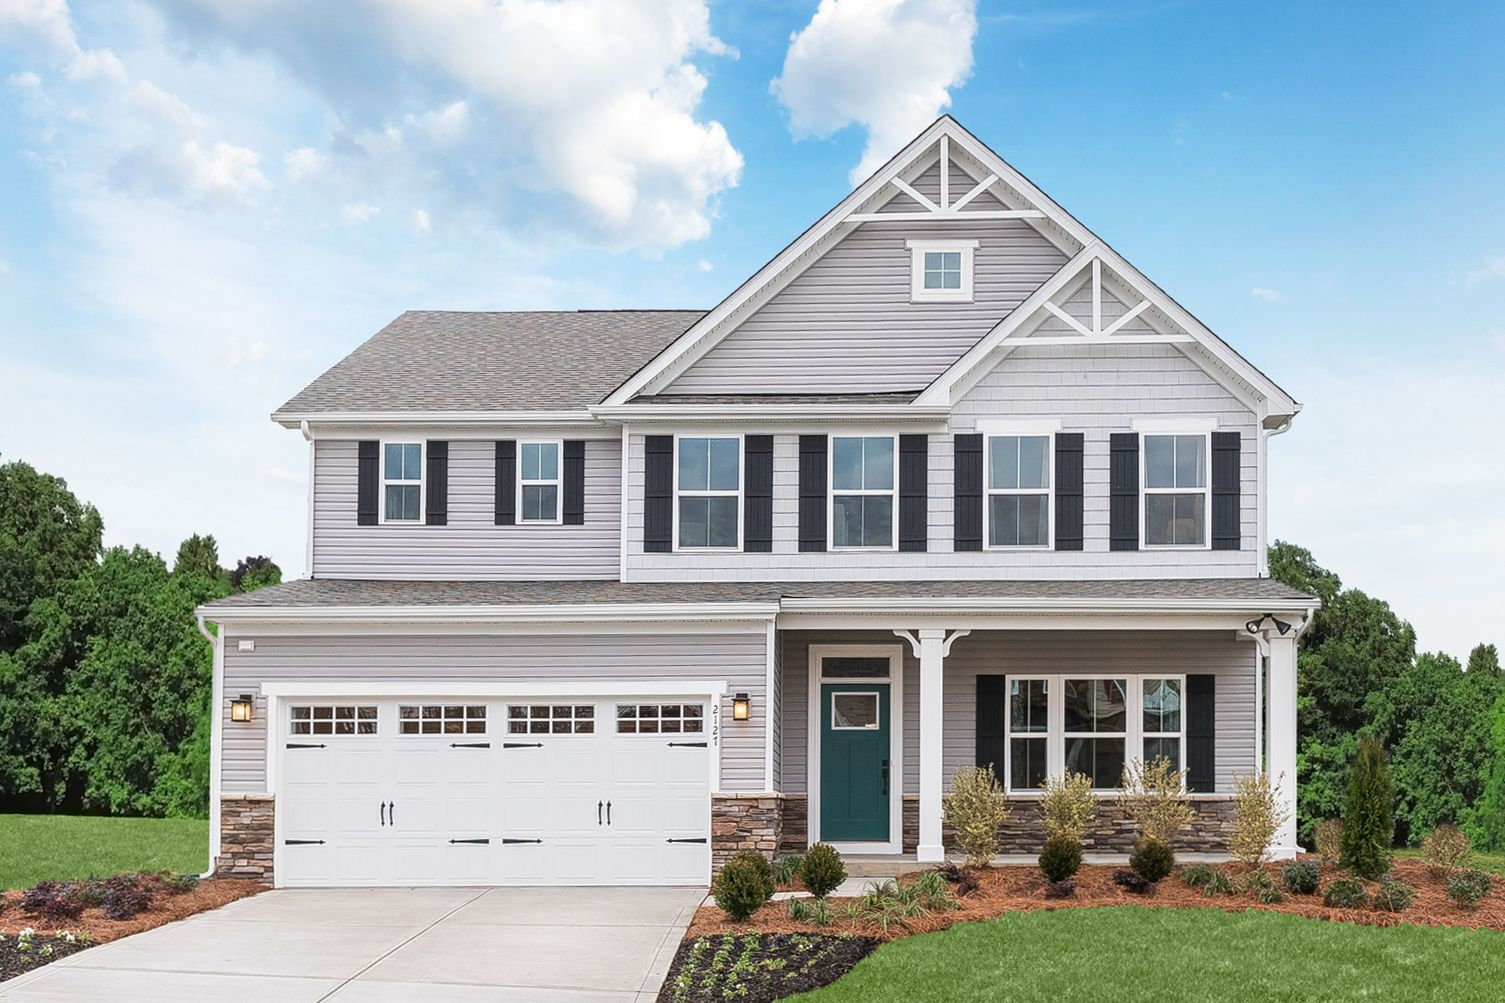 Carriage Trails 2-Story: Where Neighbors become friends:Open concept 2-story homes in Bethel Schools. Included finished basements & luxury finishes! Low Miami County taxes near WPAFB—from $290s.Click here to learn more!